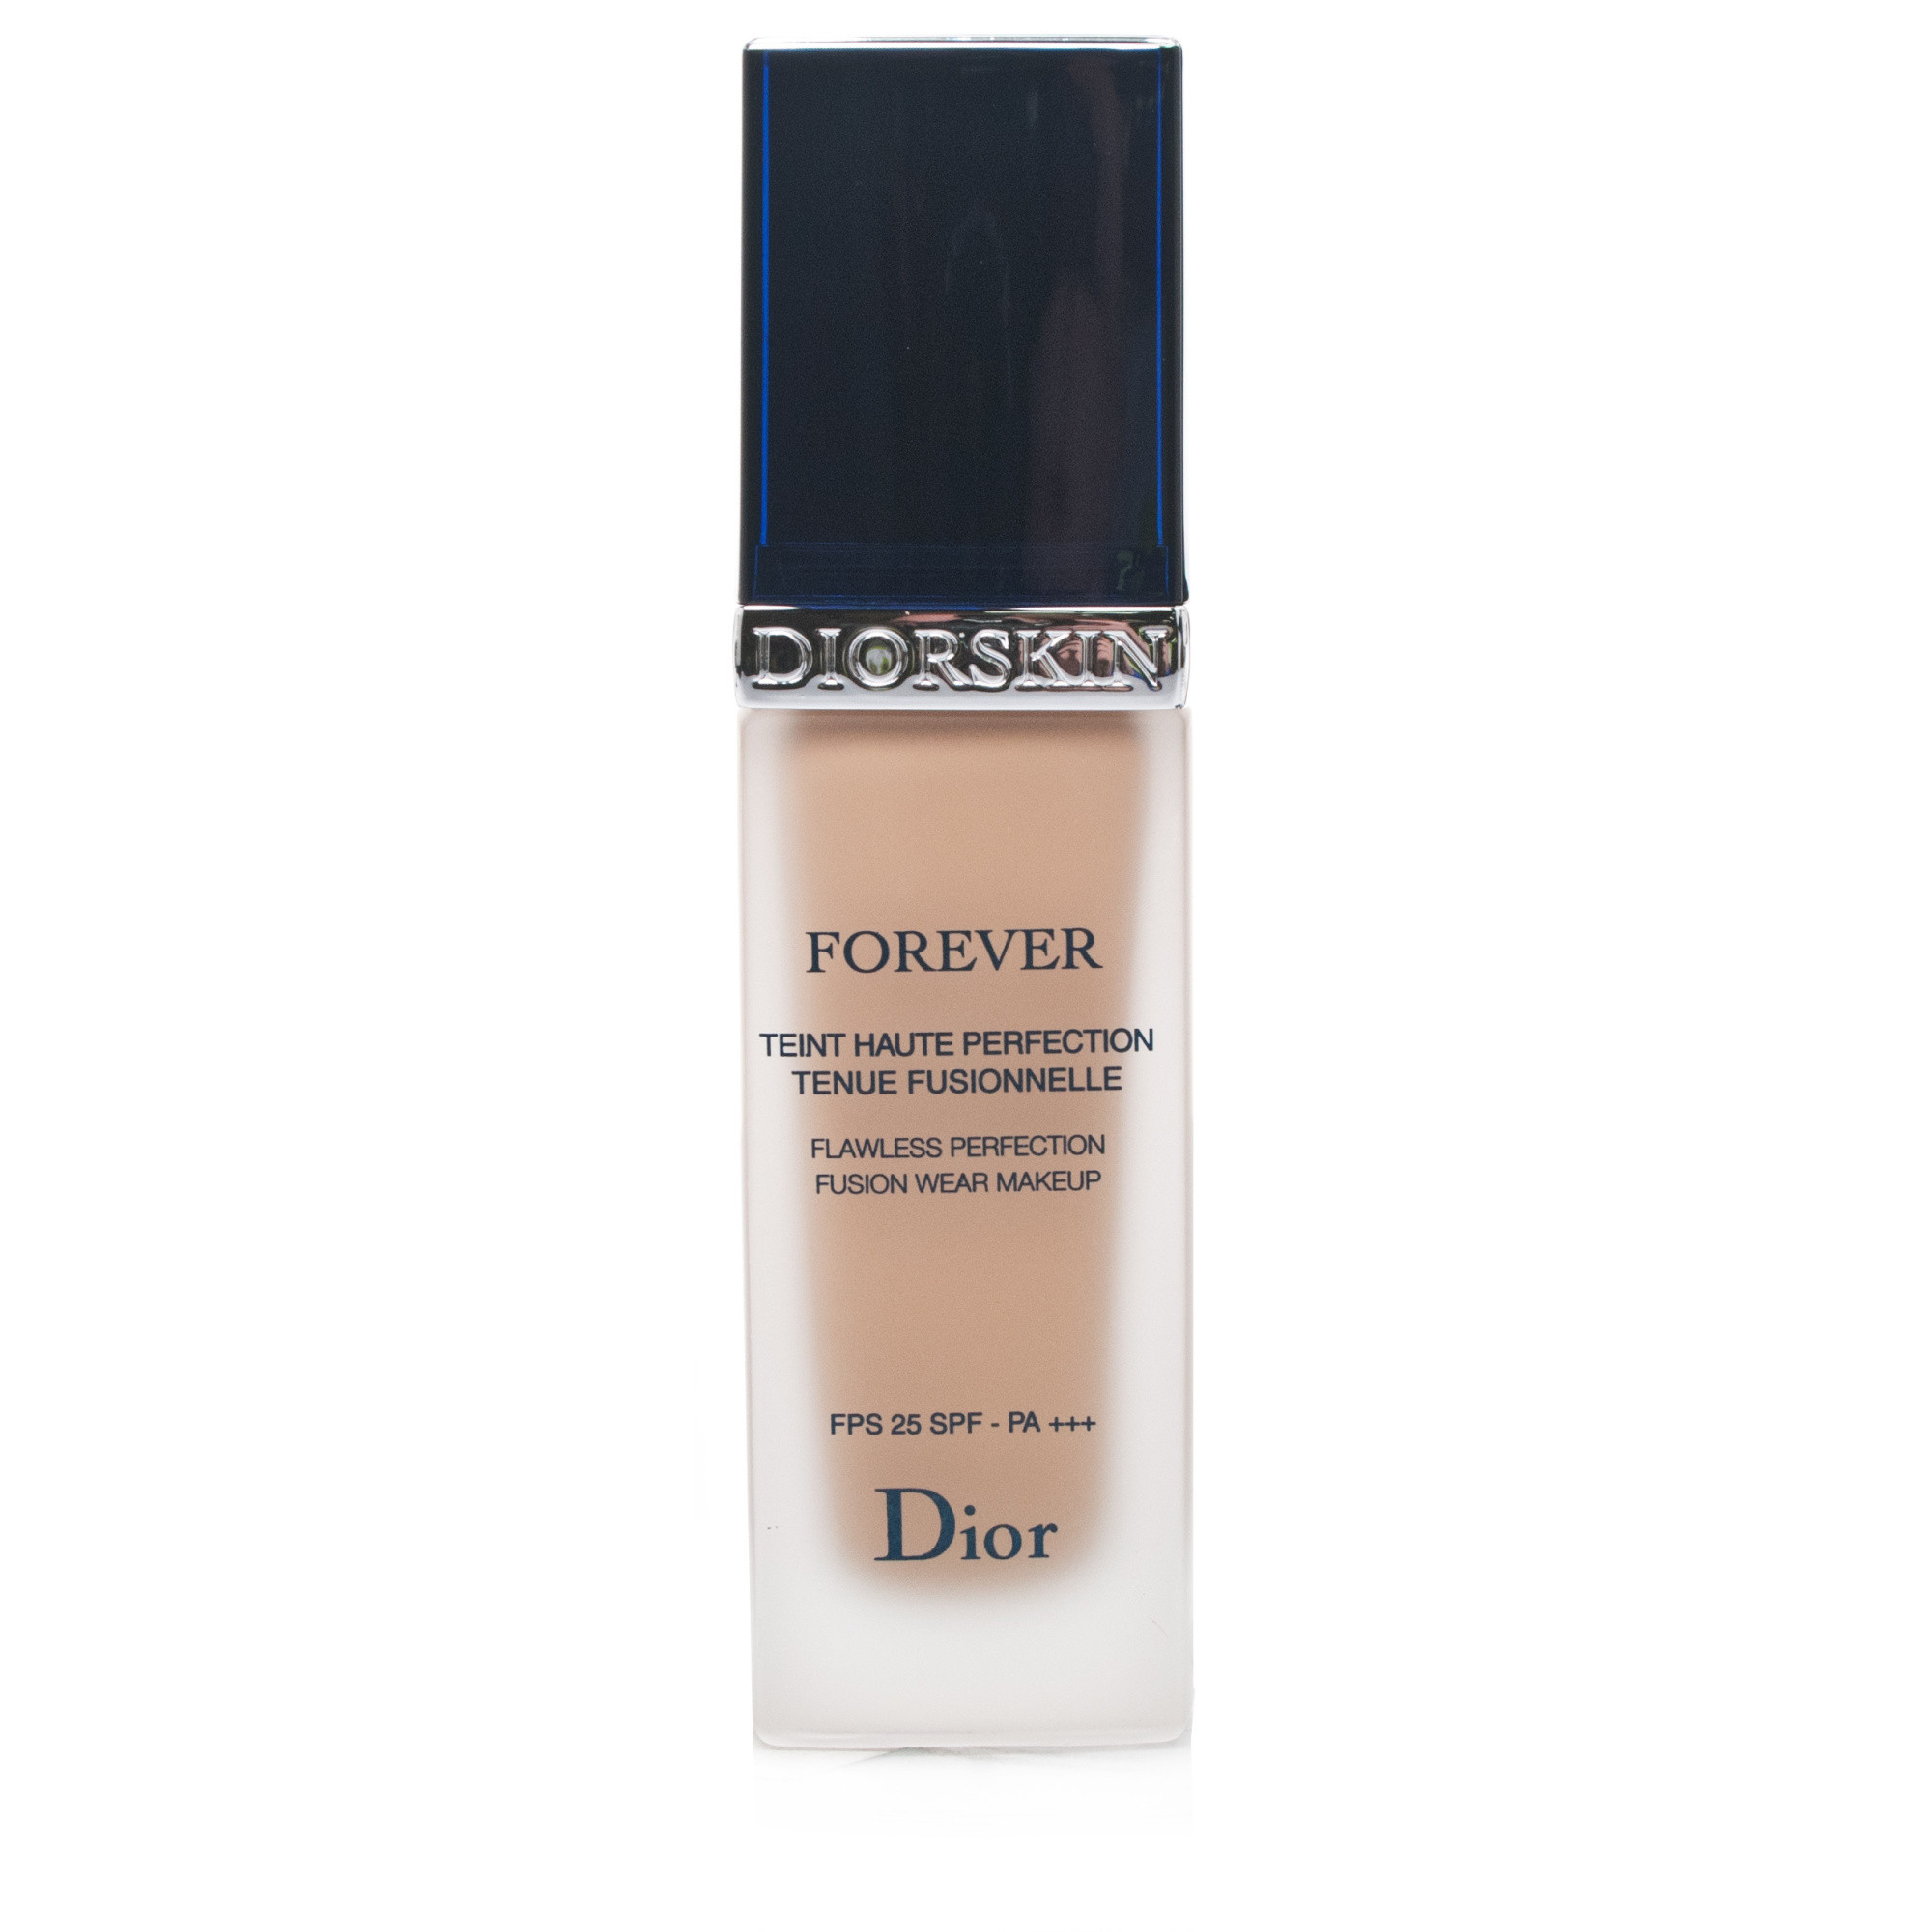 dior diorskin forever fluid make up product reviews and price comparison. Black Bedroom Furniture Sets. Home Design Ideas